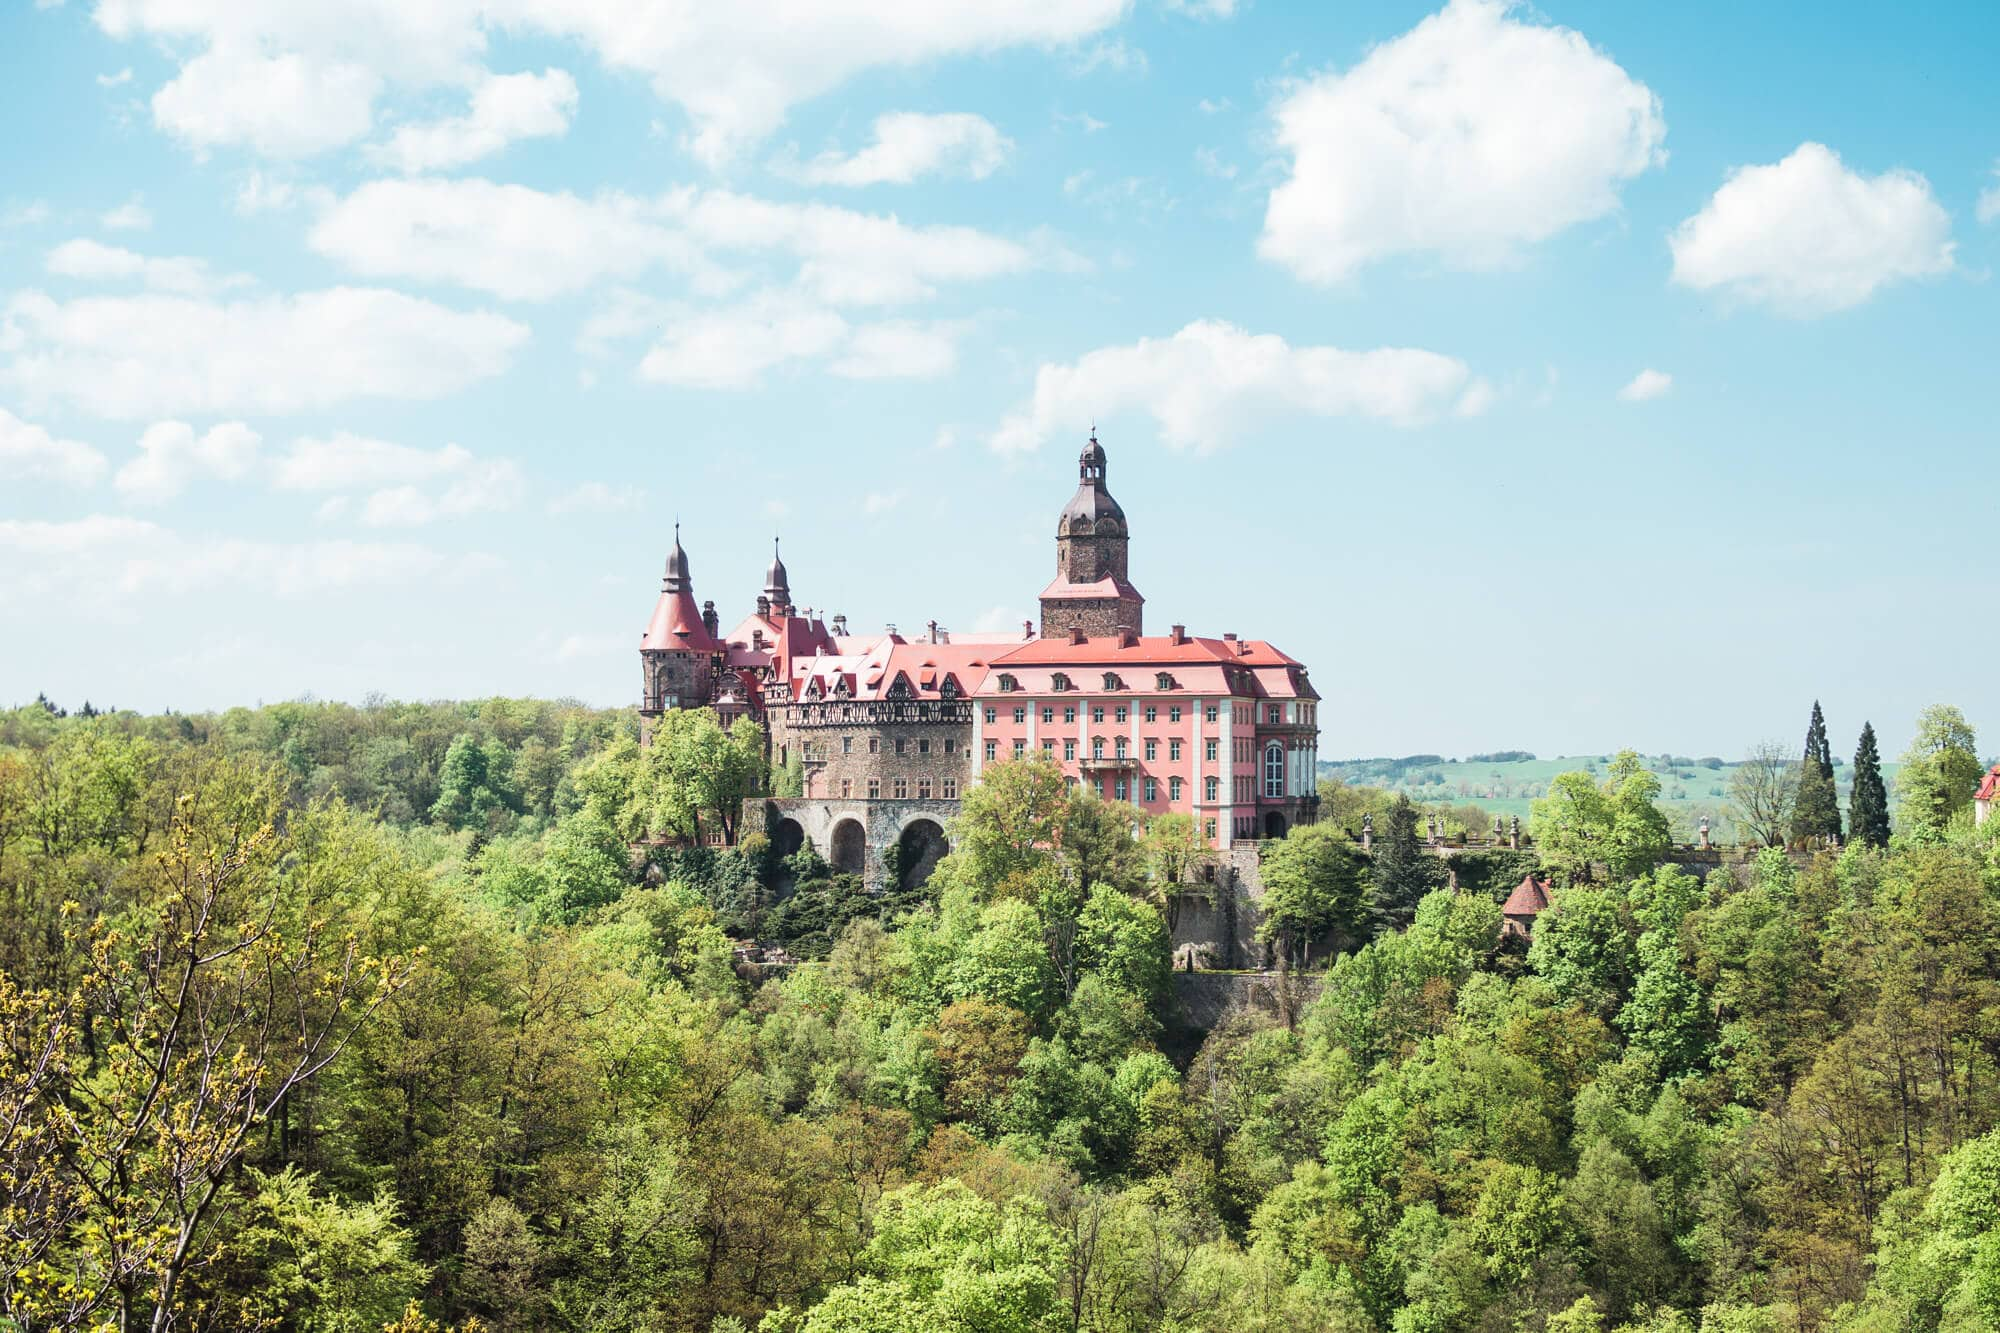 12 of the most beautiful castle in Poland you should add to your bucket list - Książ Castle